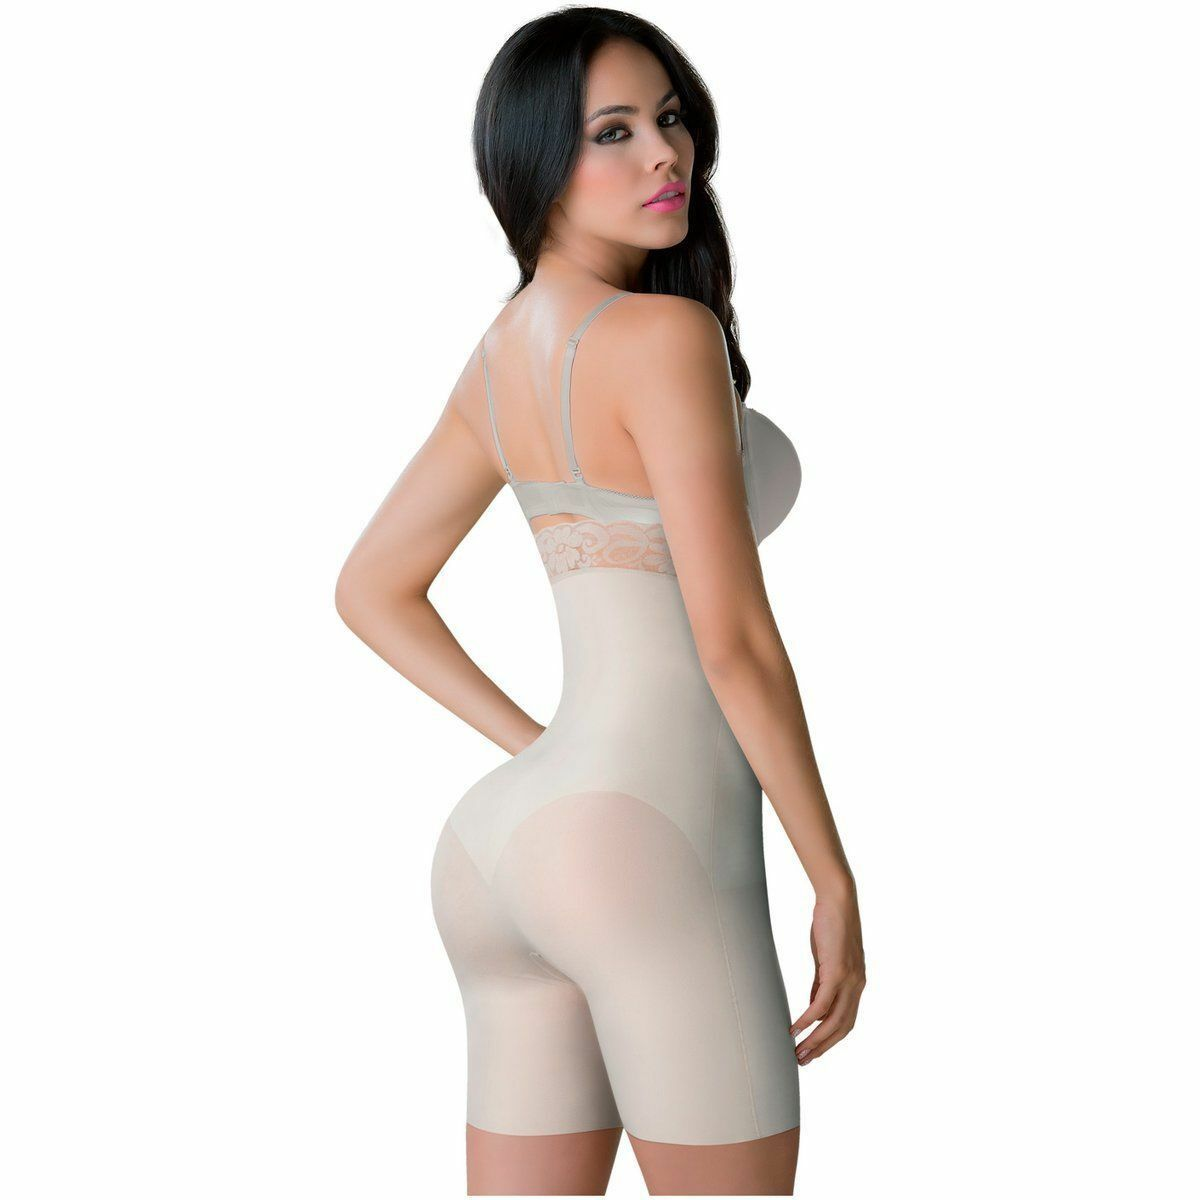 Faja Colombiana Autenthic Girdle Smartfit, Fit Control High-Waist Thigh MOLDEATE